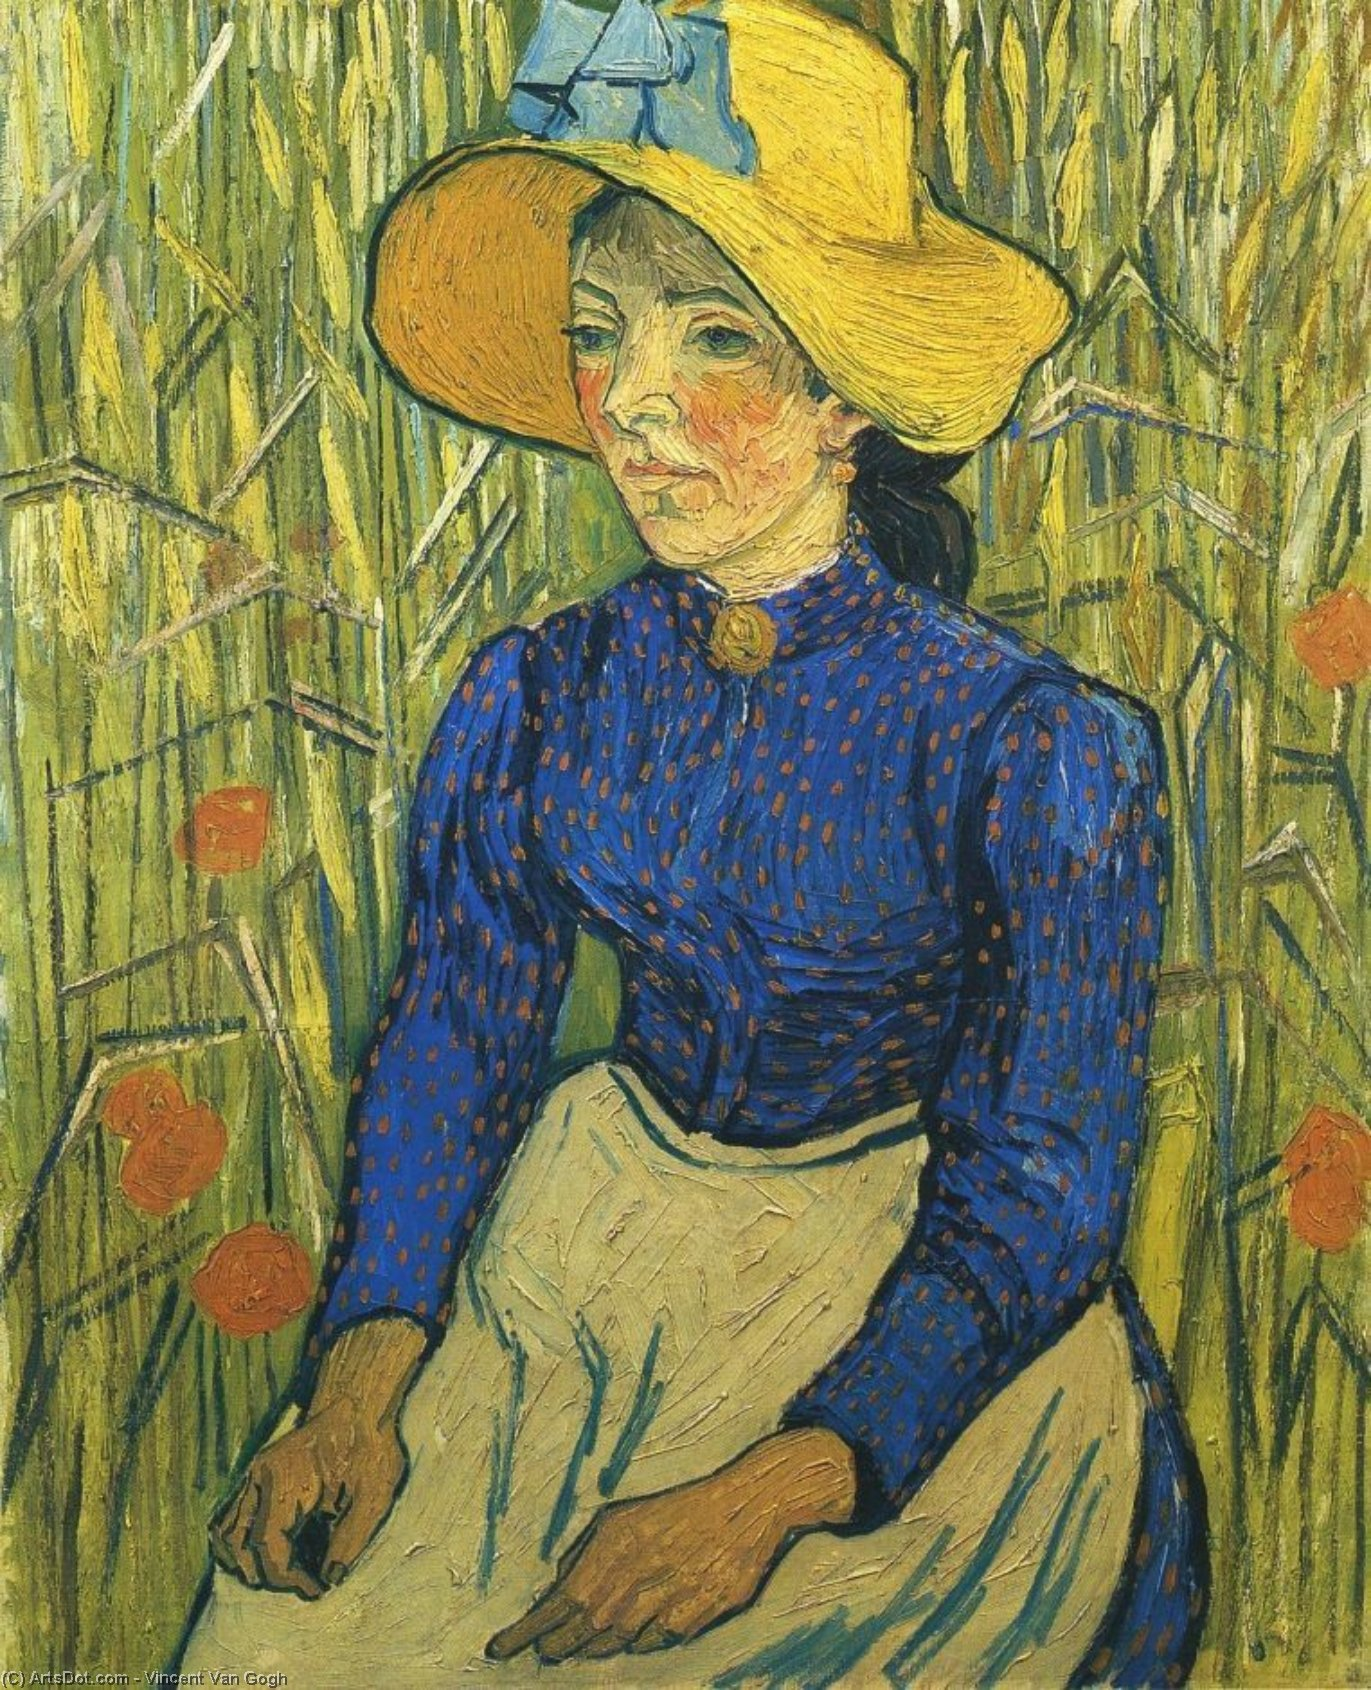 Wikioo.org - The Encyclopedia of Fine Arts - Painting, Artwork by Vincent Van Gogh - Young Peasant Woman with Straw Hat Sitting in the Wheat